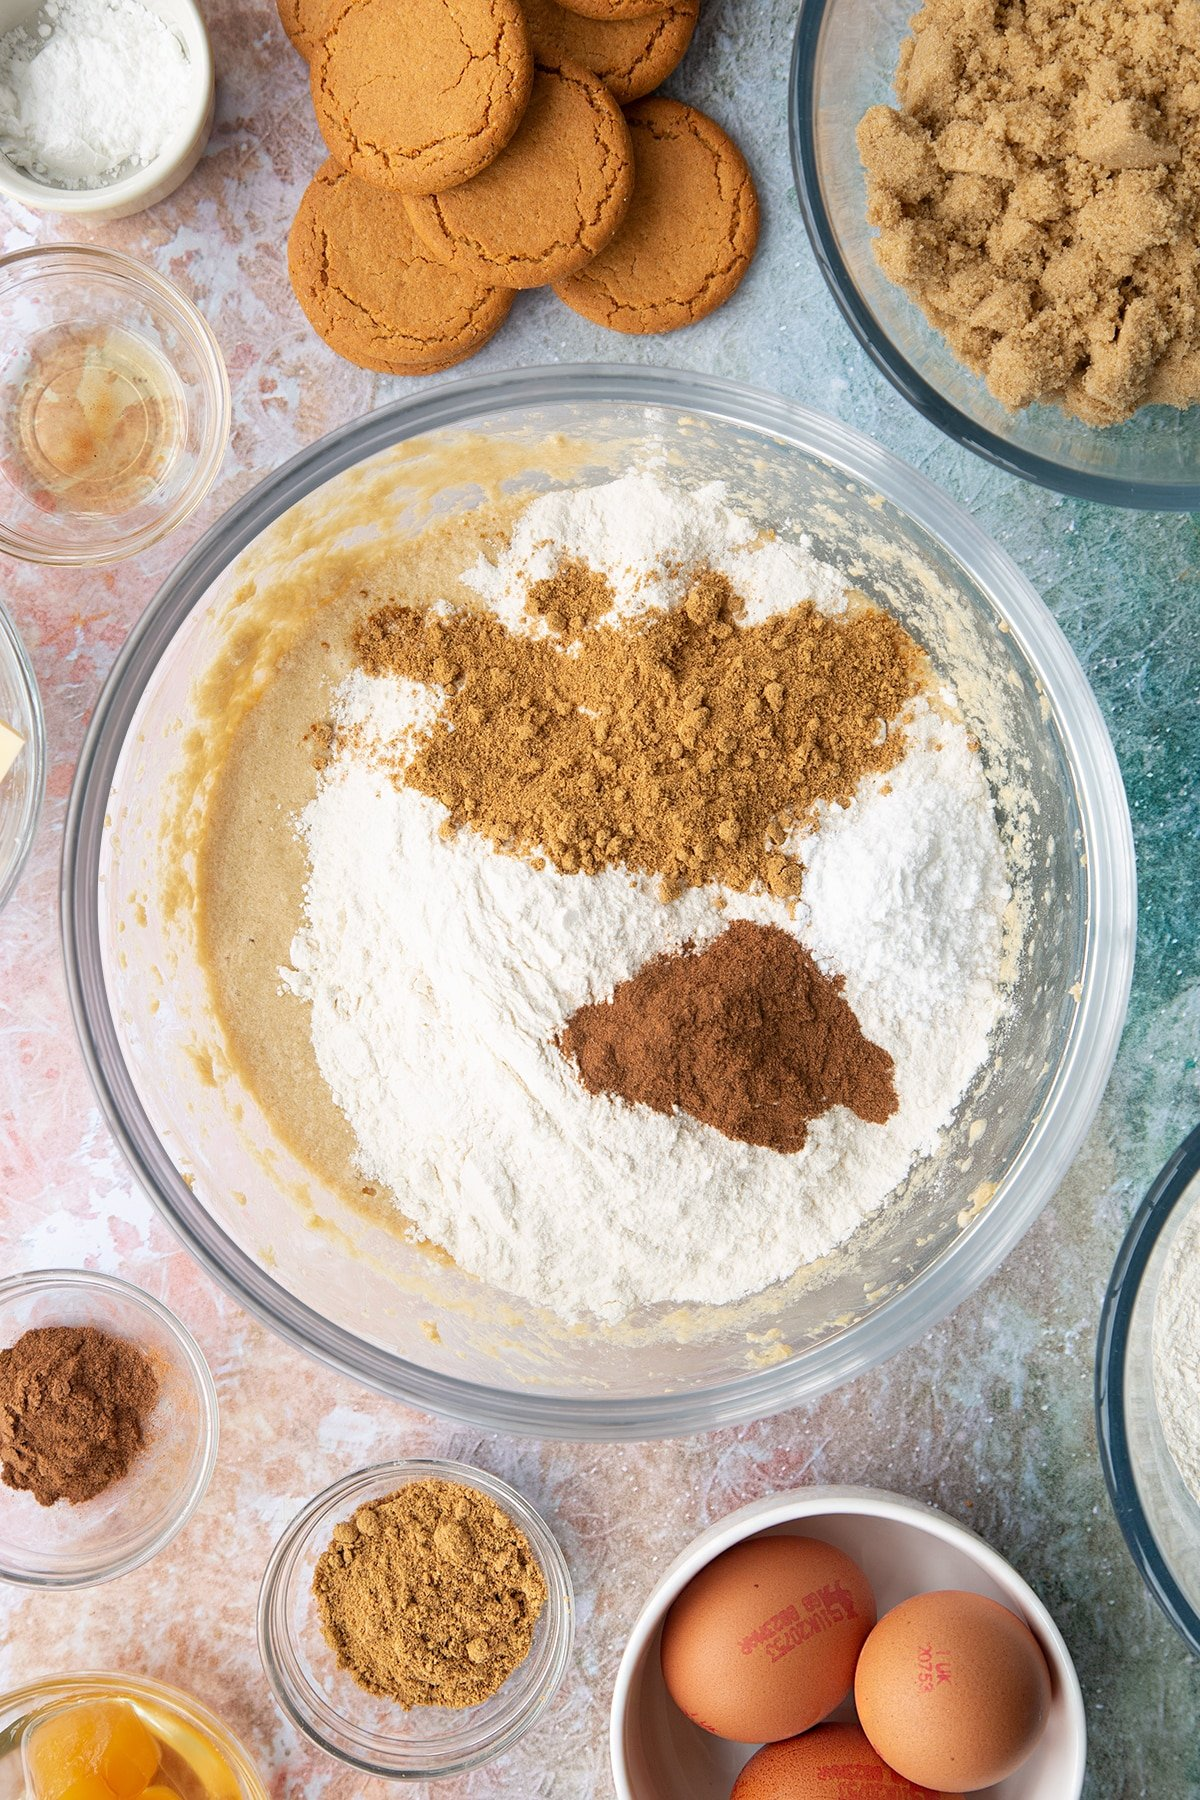 Butter, soft light brown sugar, milk, eggs and vanilla whisked together in a mixing bowl with flour, cinnamon and ginger on top. Ingredients to make ginger cupcakes surround the bowl.